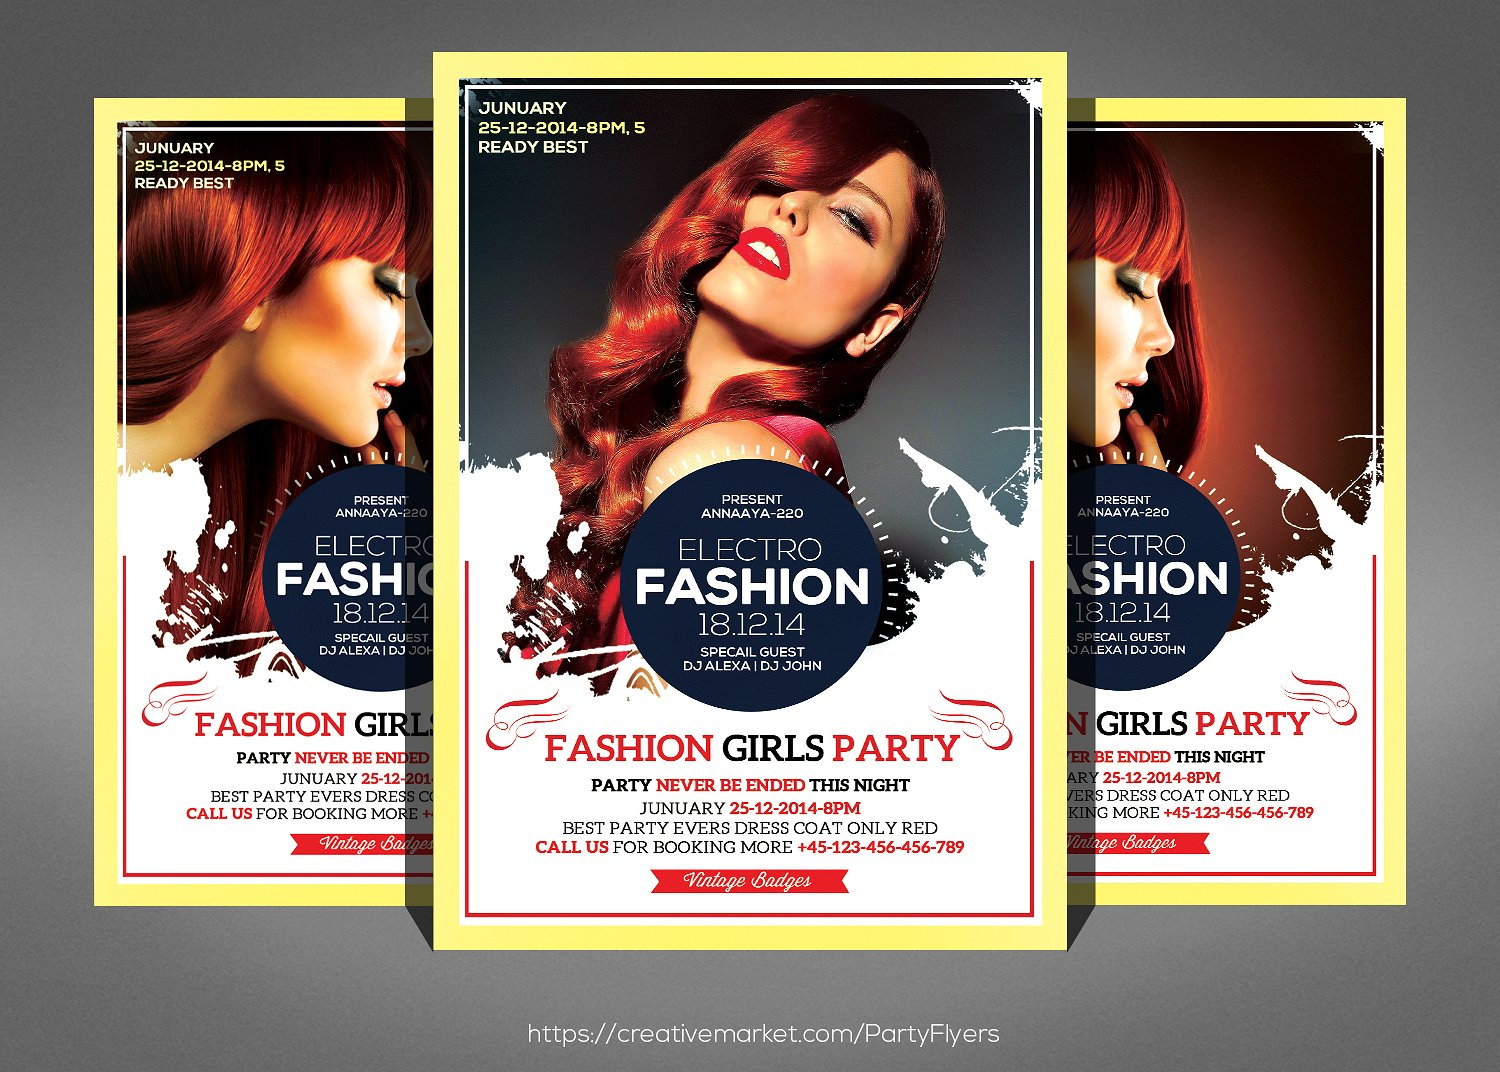 15 double sided flyers design trends premium psd for Fashion design agency